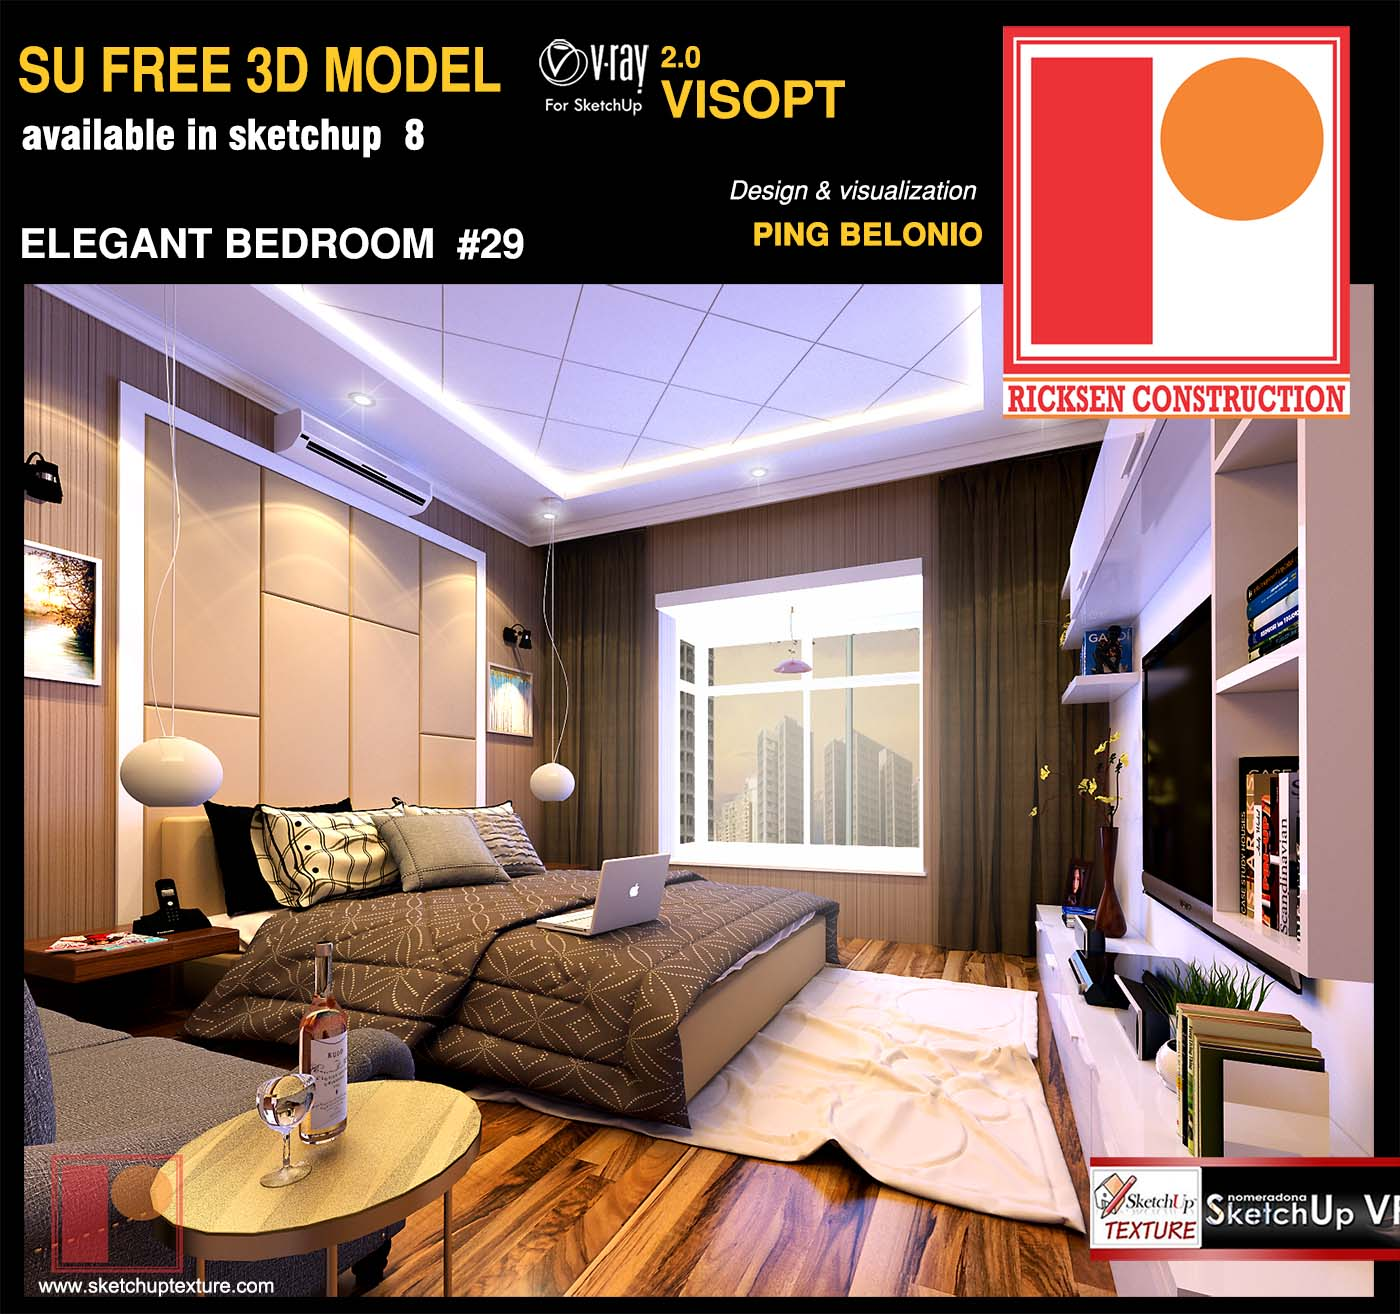 free Sketchup Model elegant Bedroom by Ping Belonio vray interior visopt